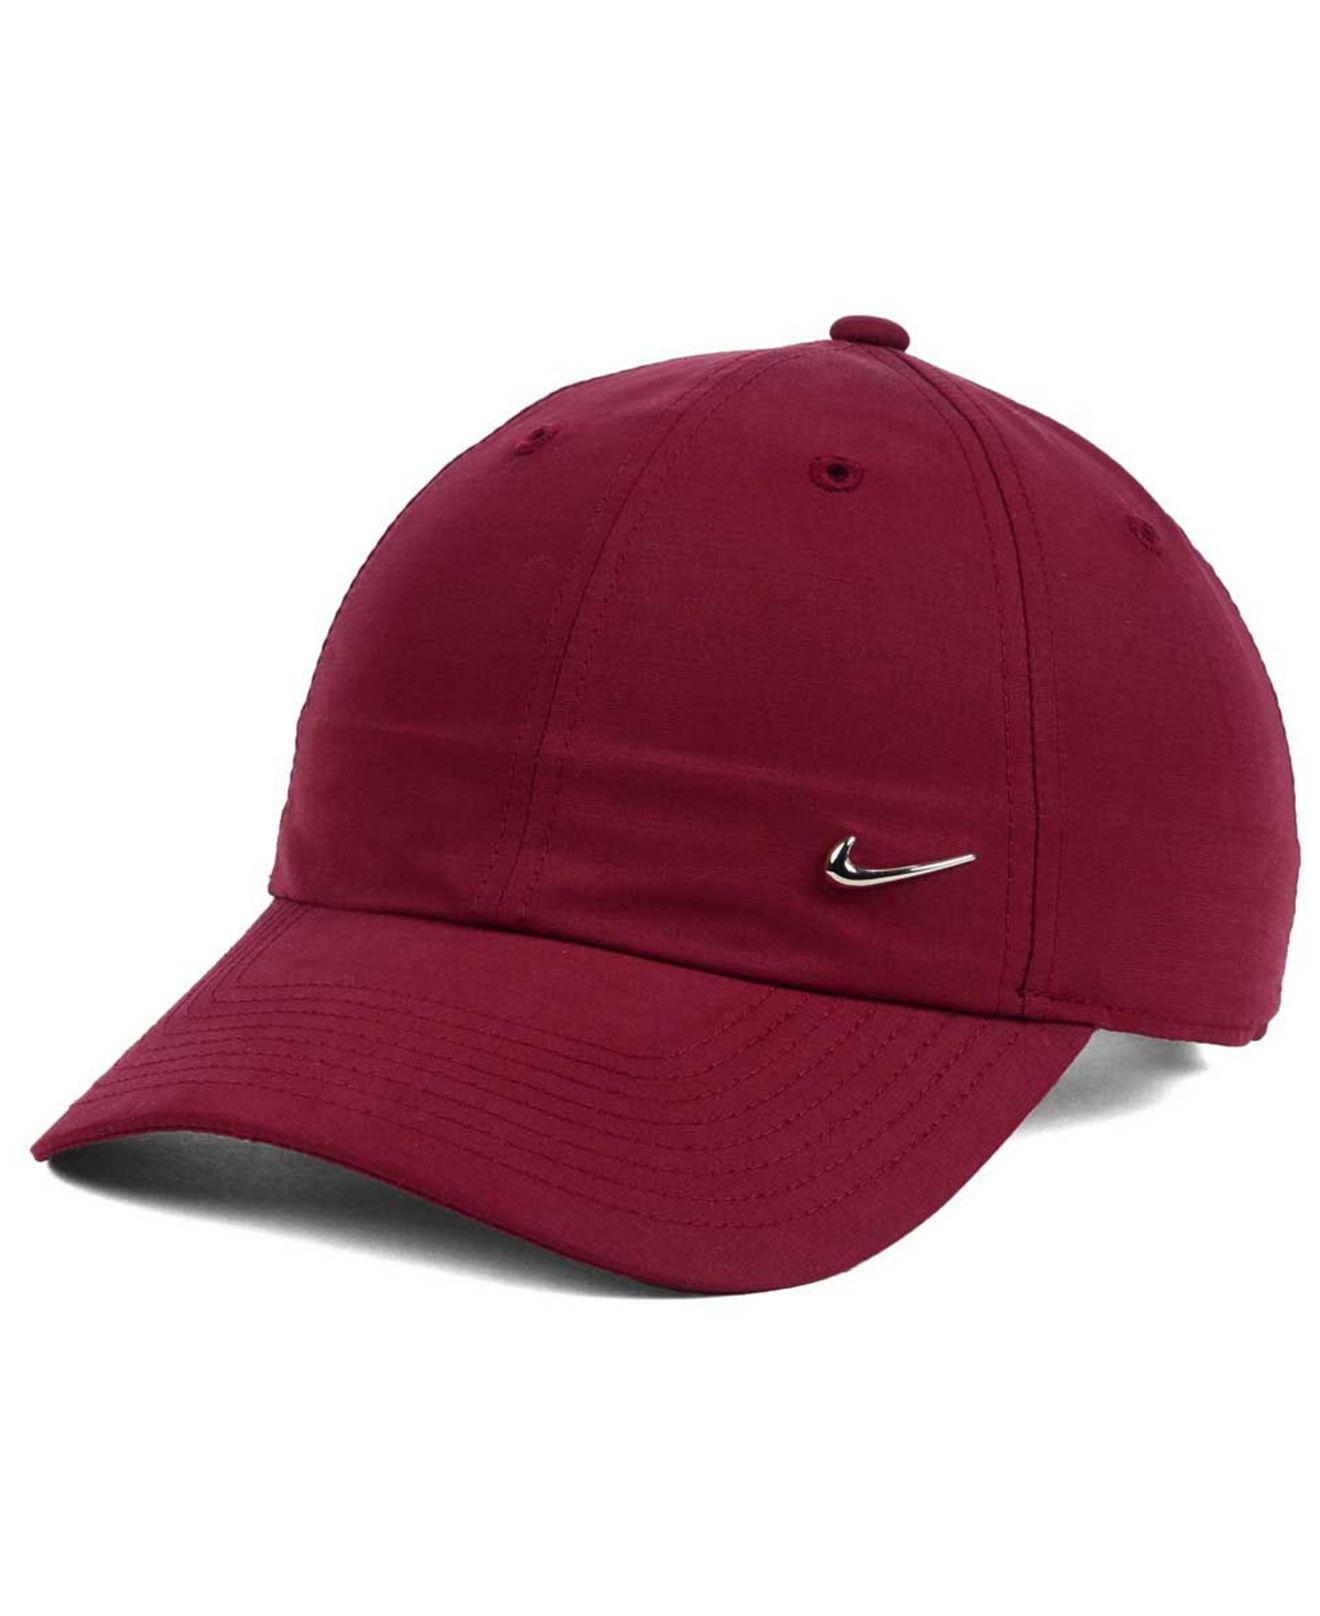 f4dcad9096b ... where to buy lyst nike metal swoosh cap in red for men 723b4 b468e ...